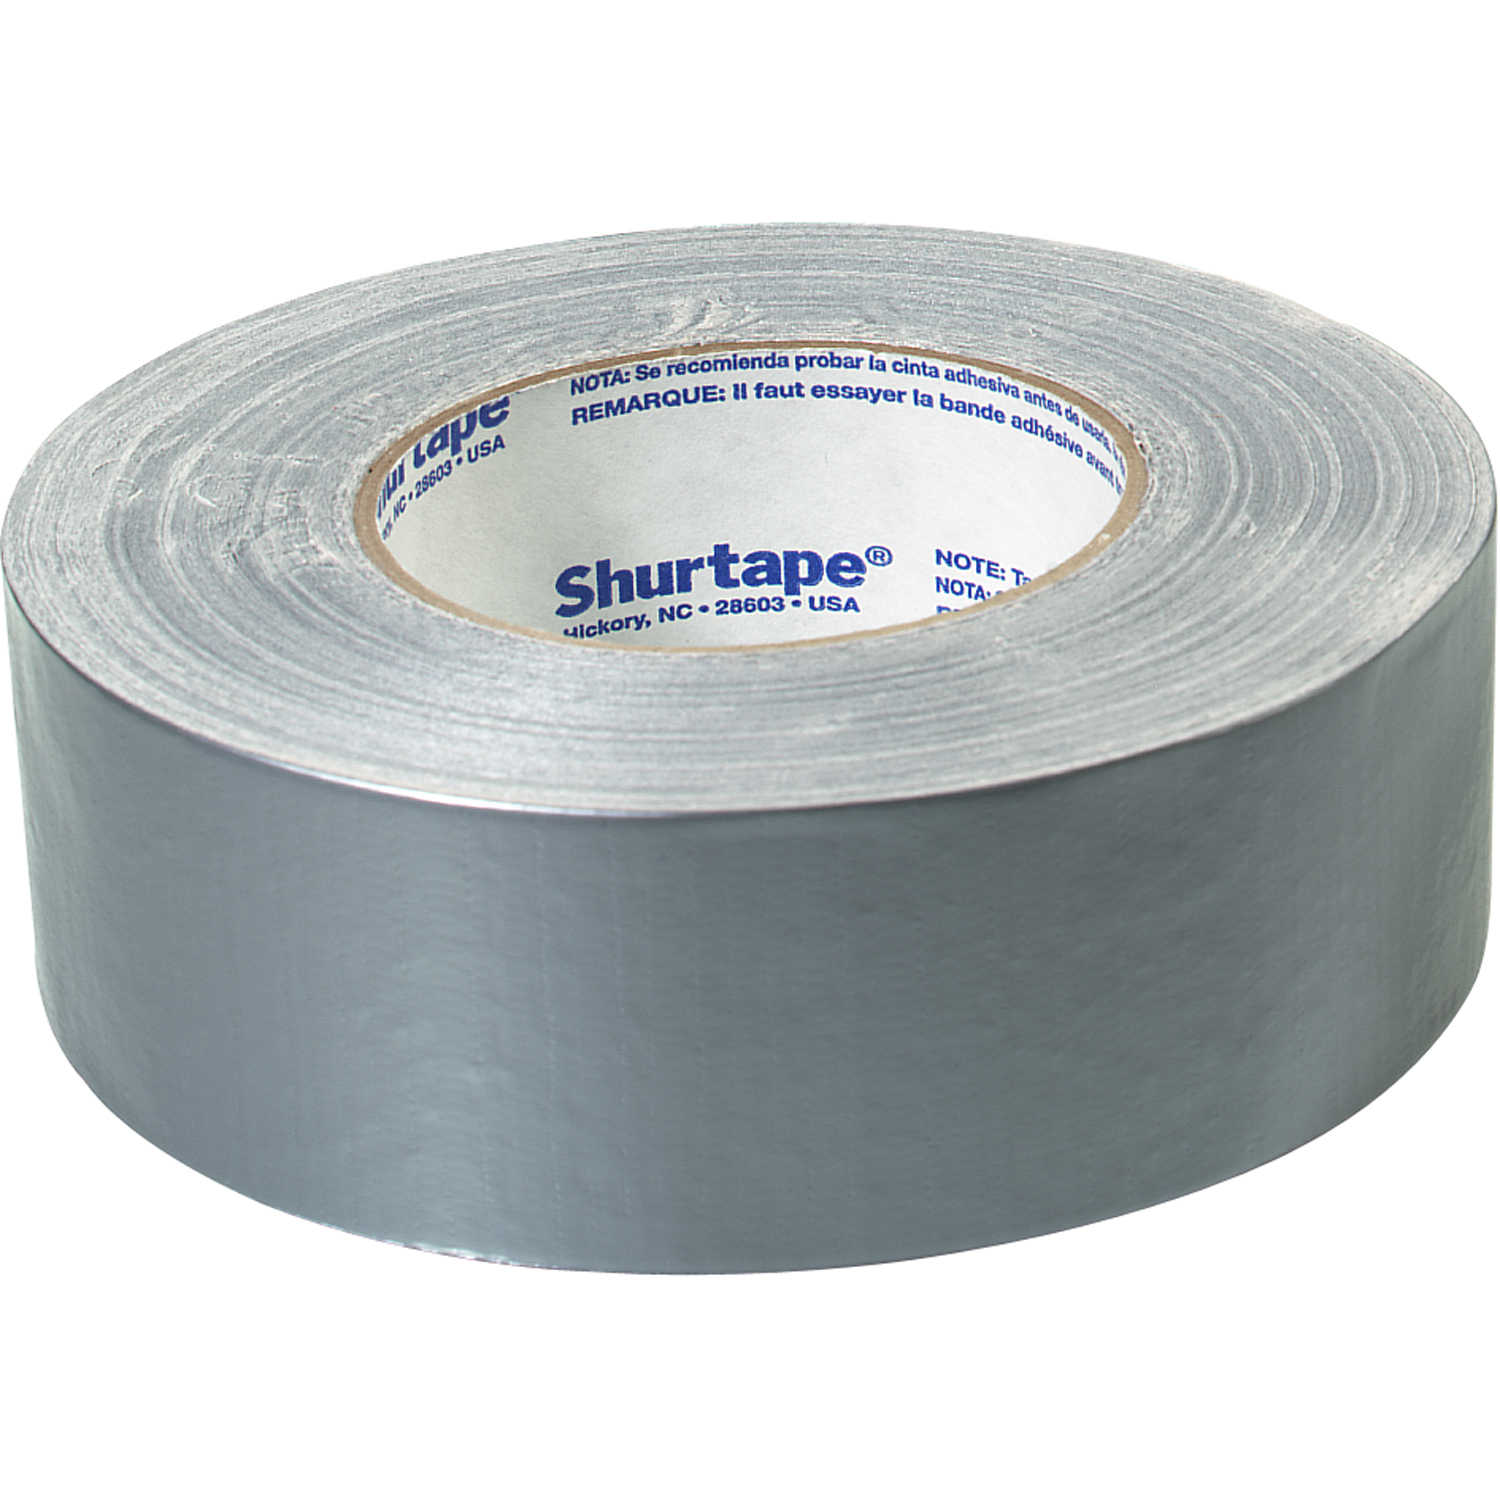 15x48mm Mountain Warehouse Roll of Duct Tape in Black Water Resistant